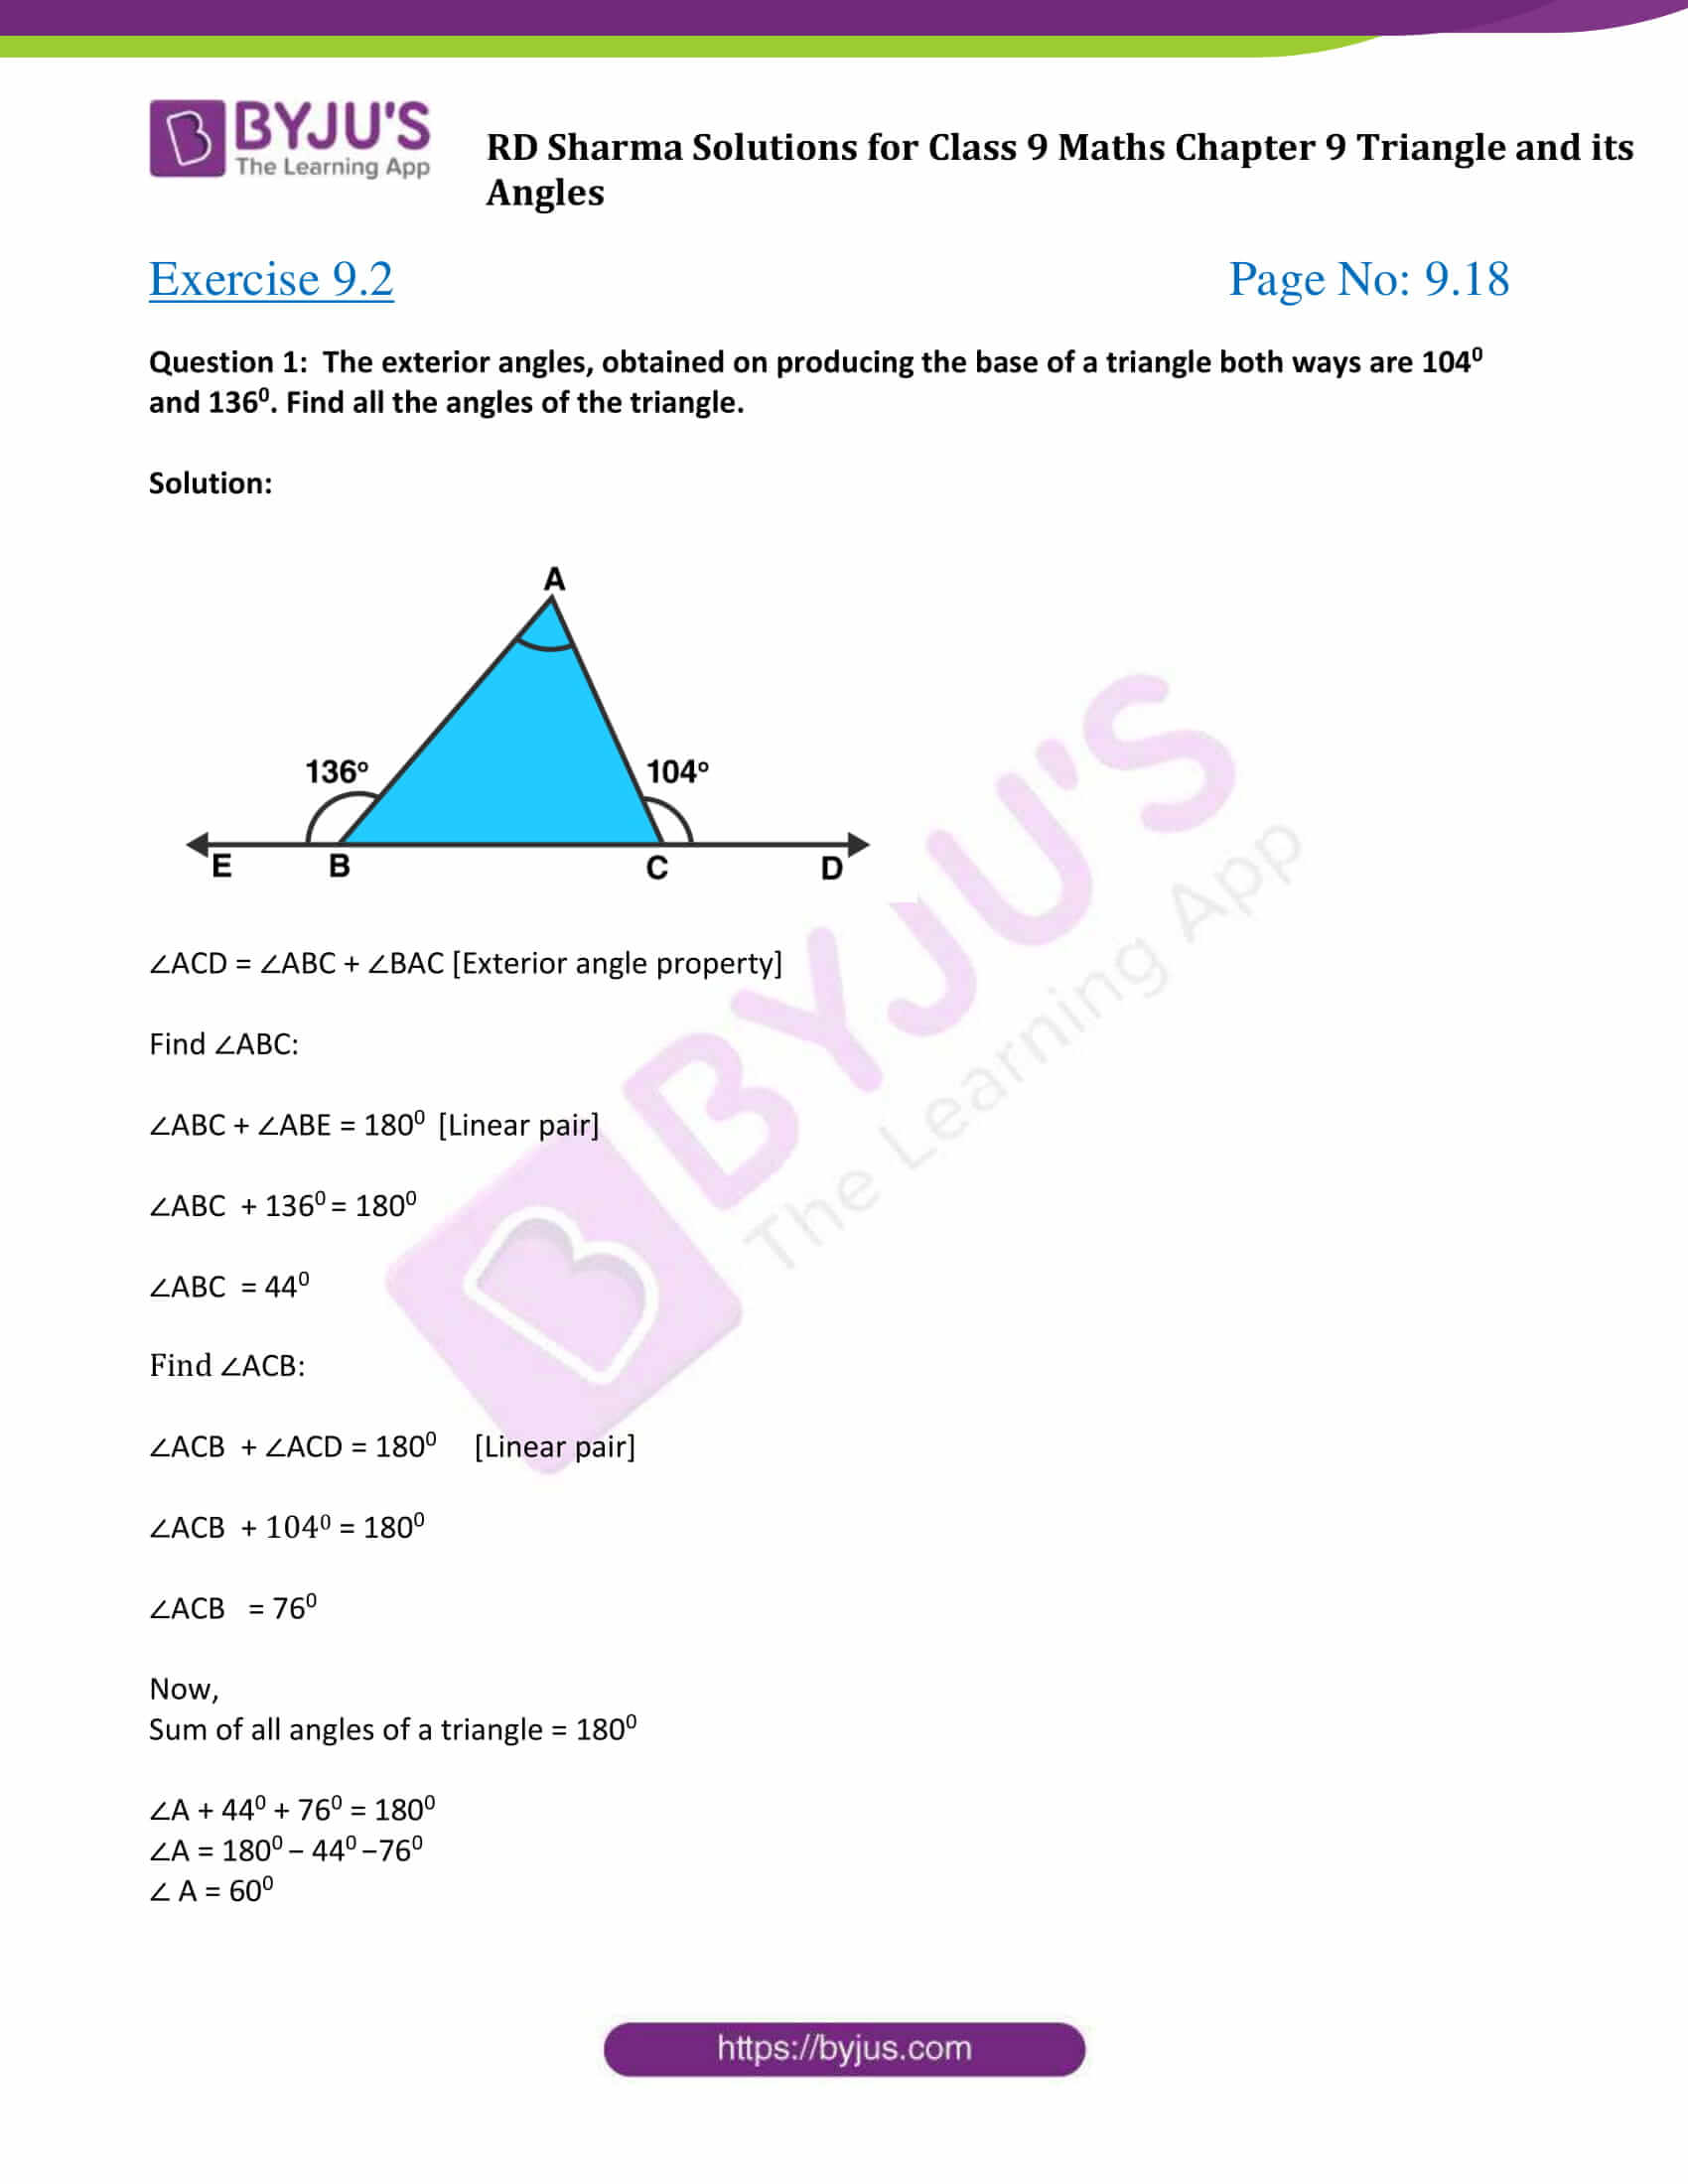 RD Sharma Solution class 9 Maths Chapter 9 Triangle and its Angles 05